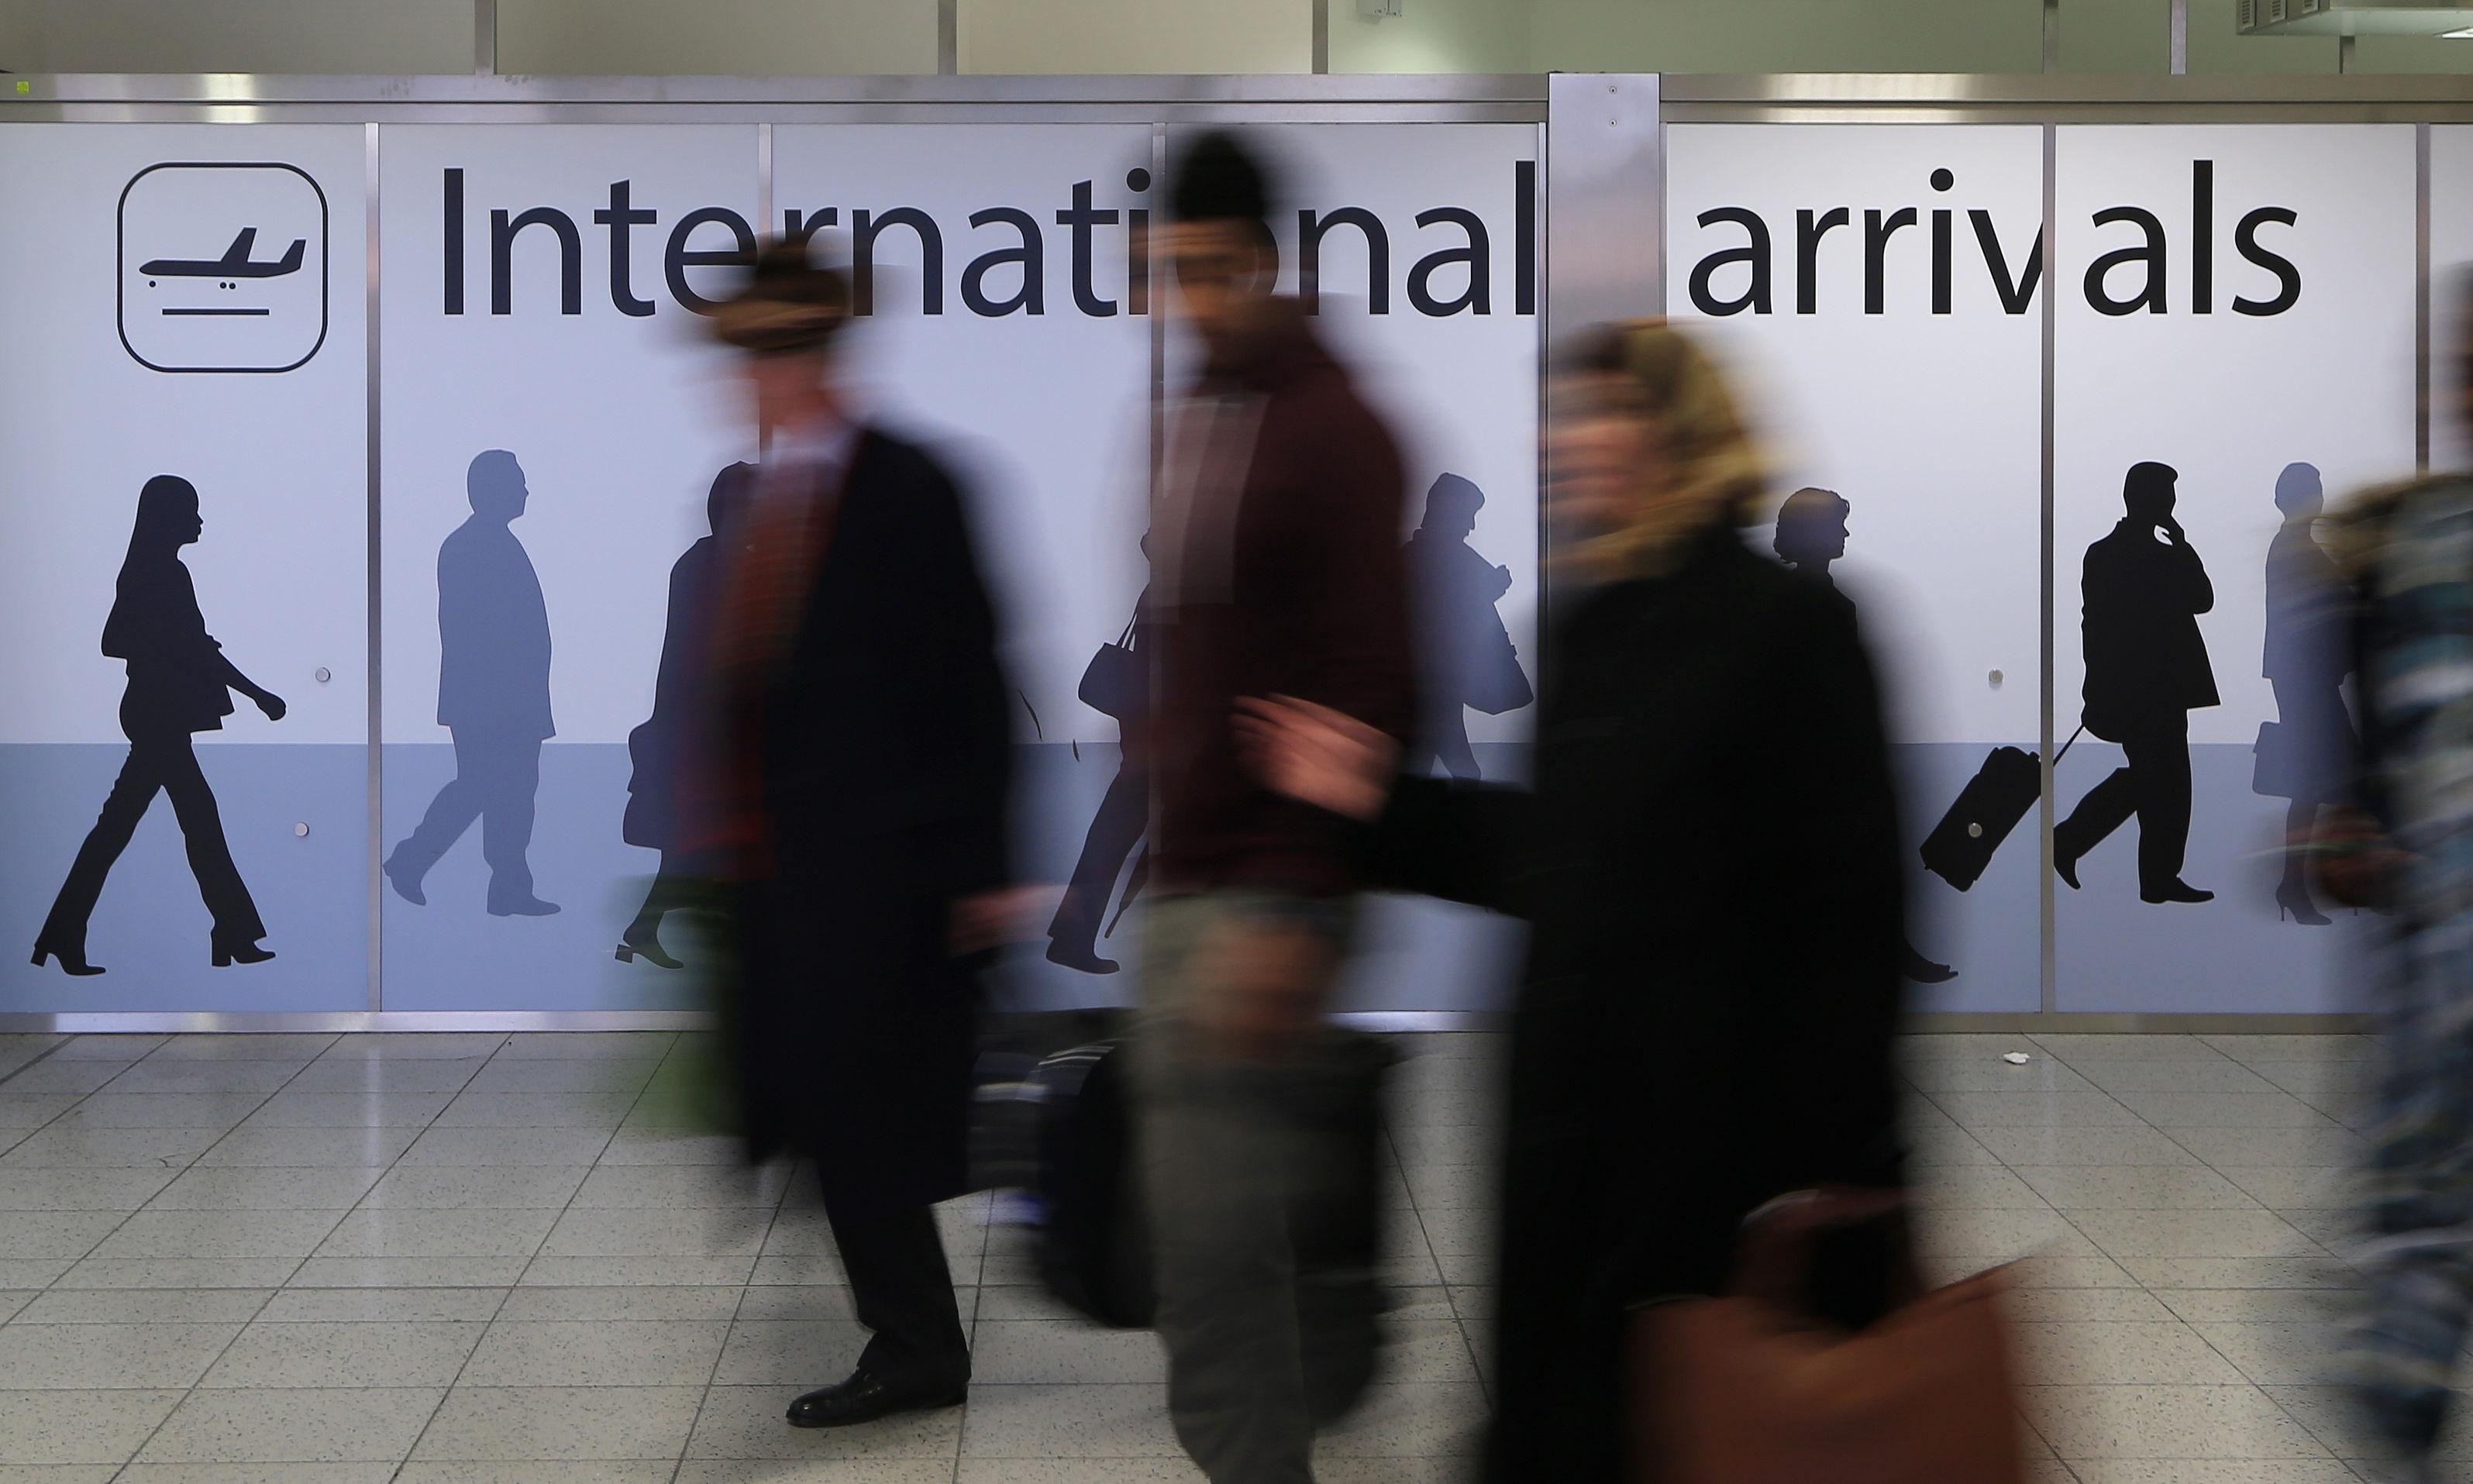 EU migration to UK underestimated by ONS, analysts say